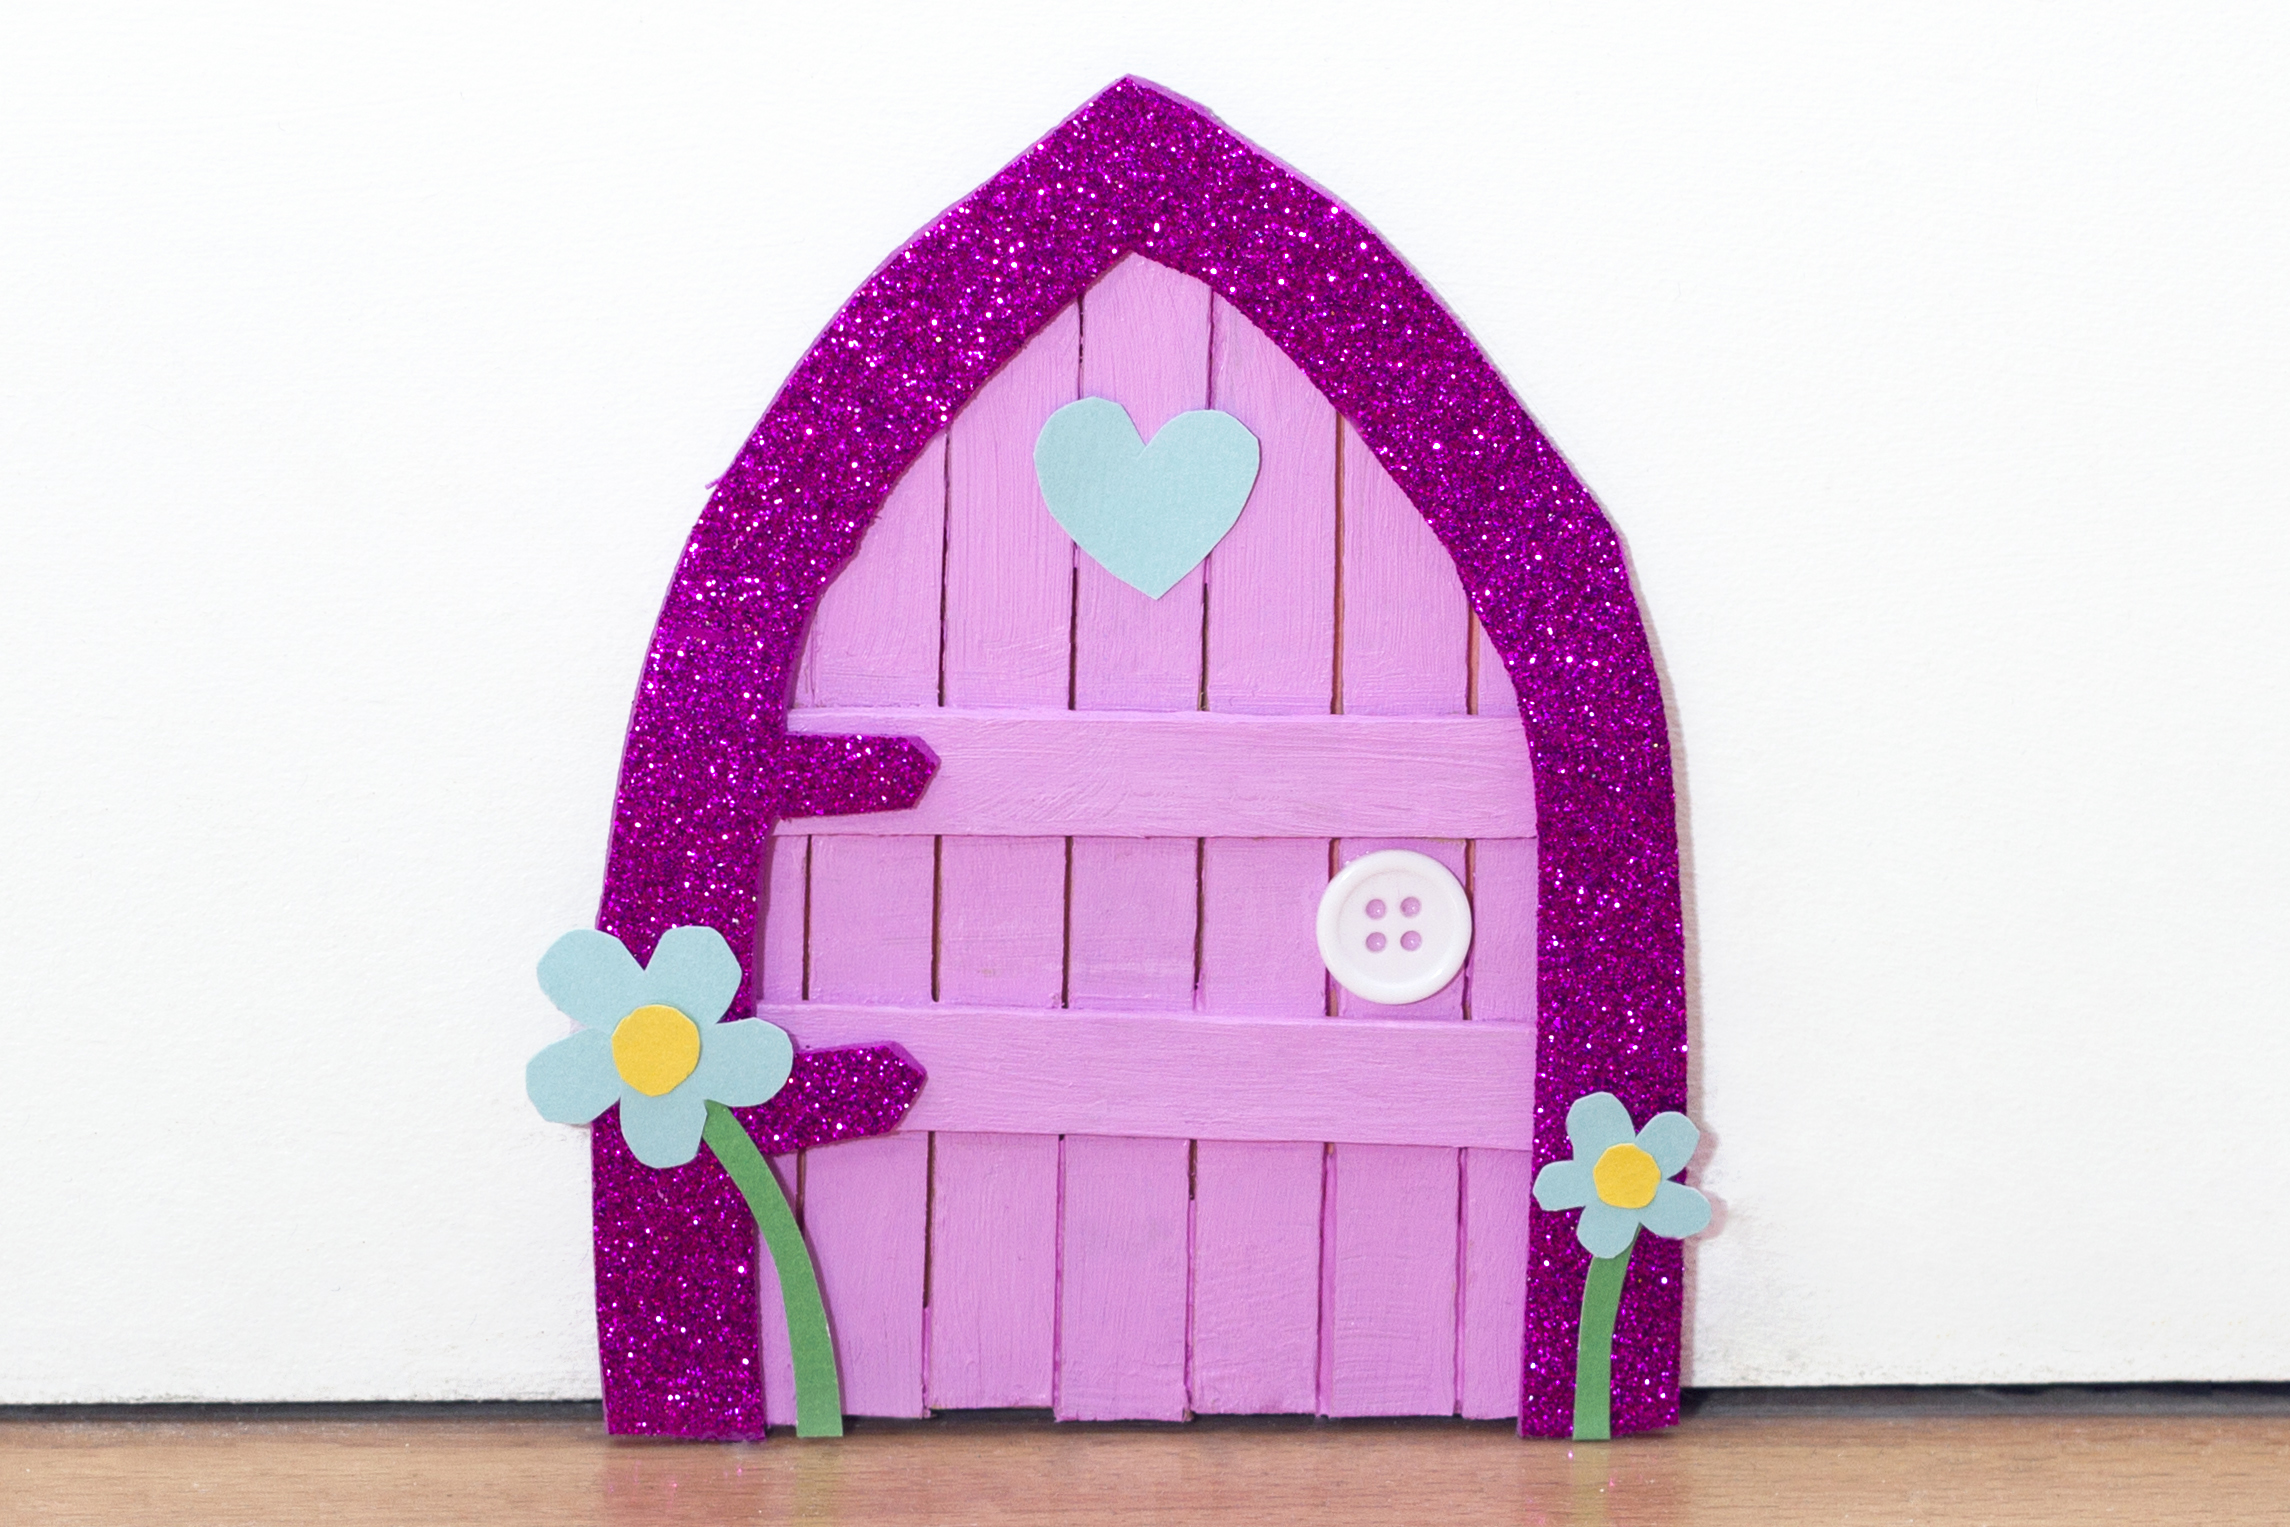 Step 7  Glue the heart and flower card shapes onto the fairy door and you're finished! Place onto a skirting board in your home for the fairies to come and go.  Subscribe to my  newsletter  to receive fun craft ideas weekly!  Please note: this blog post contains affiliate links, however all opinions are my own and I only link to products that I personally use and recommend.  Here's a video showing you how to make this DIY fairy door craft.  Subscribe to my youtube channel  for more crafty videos!